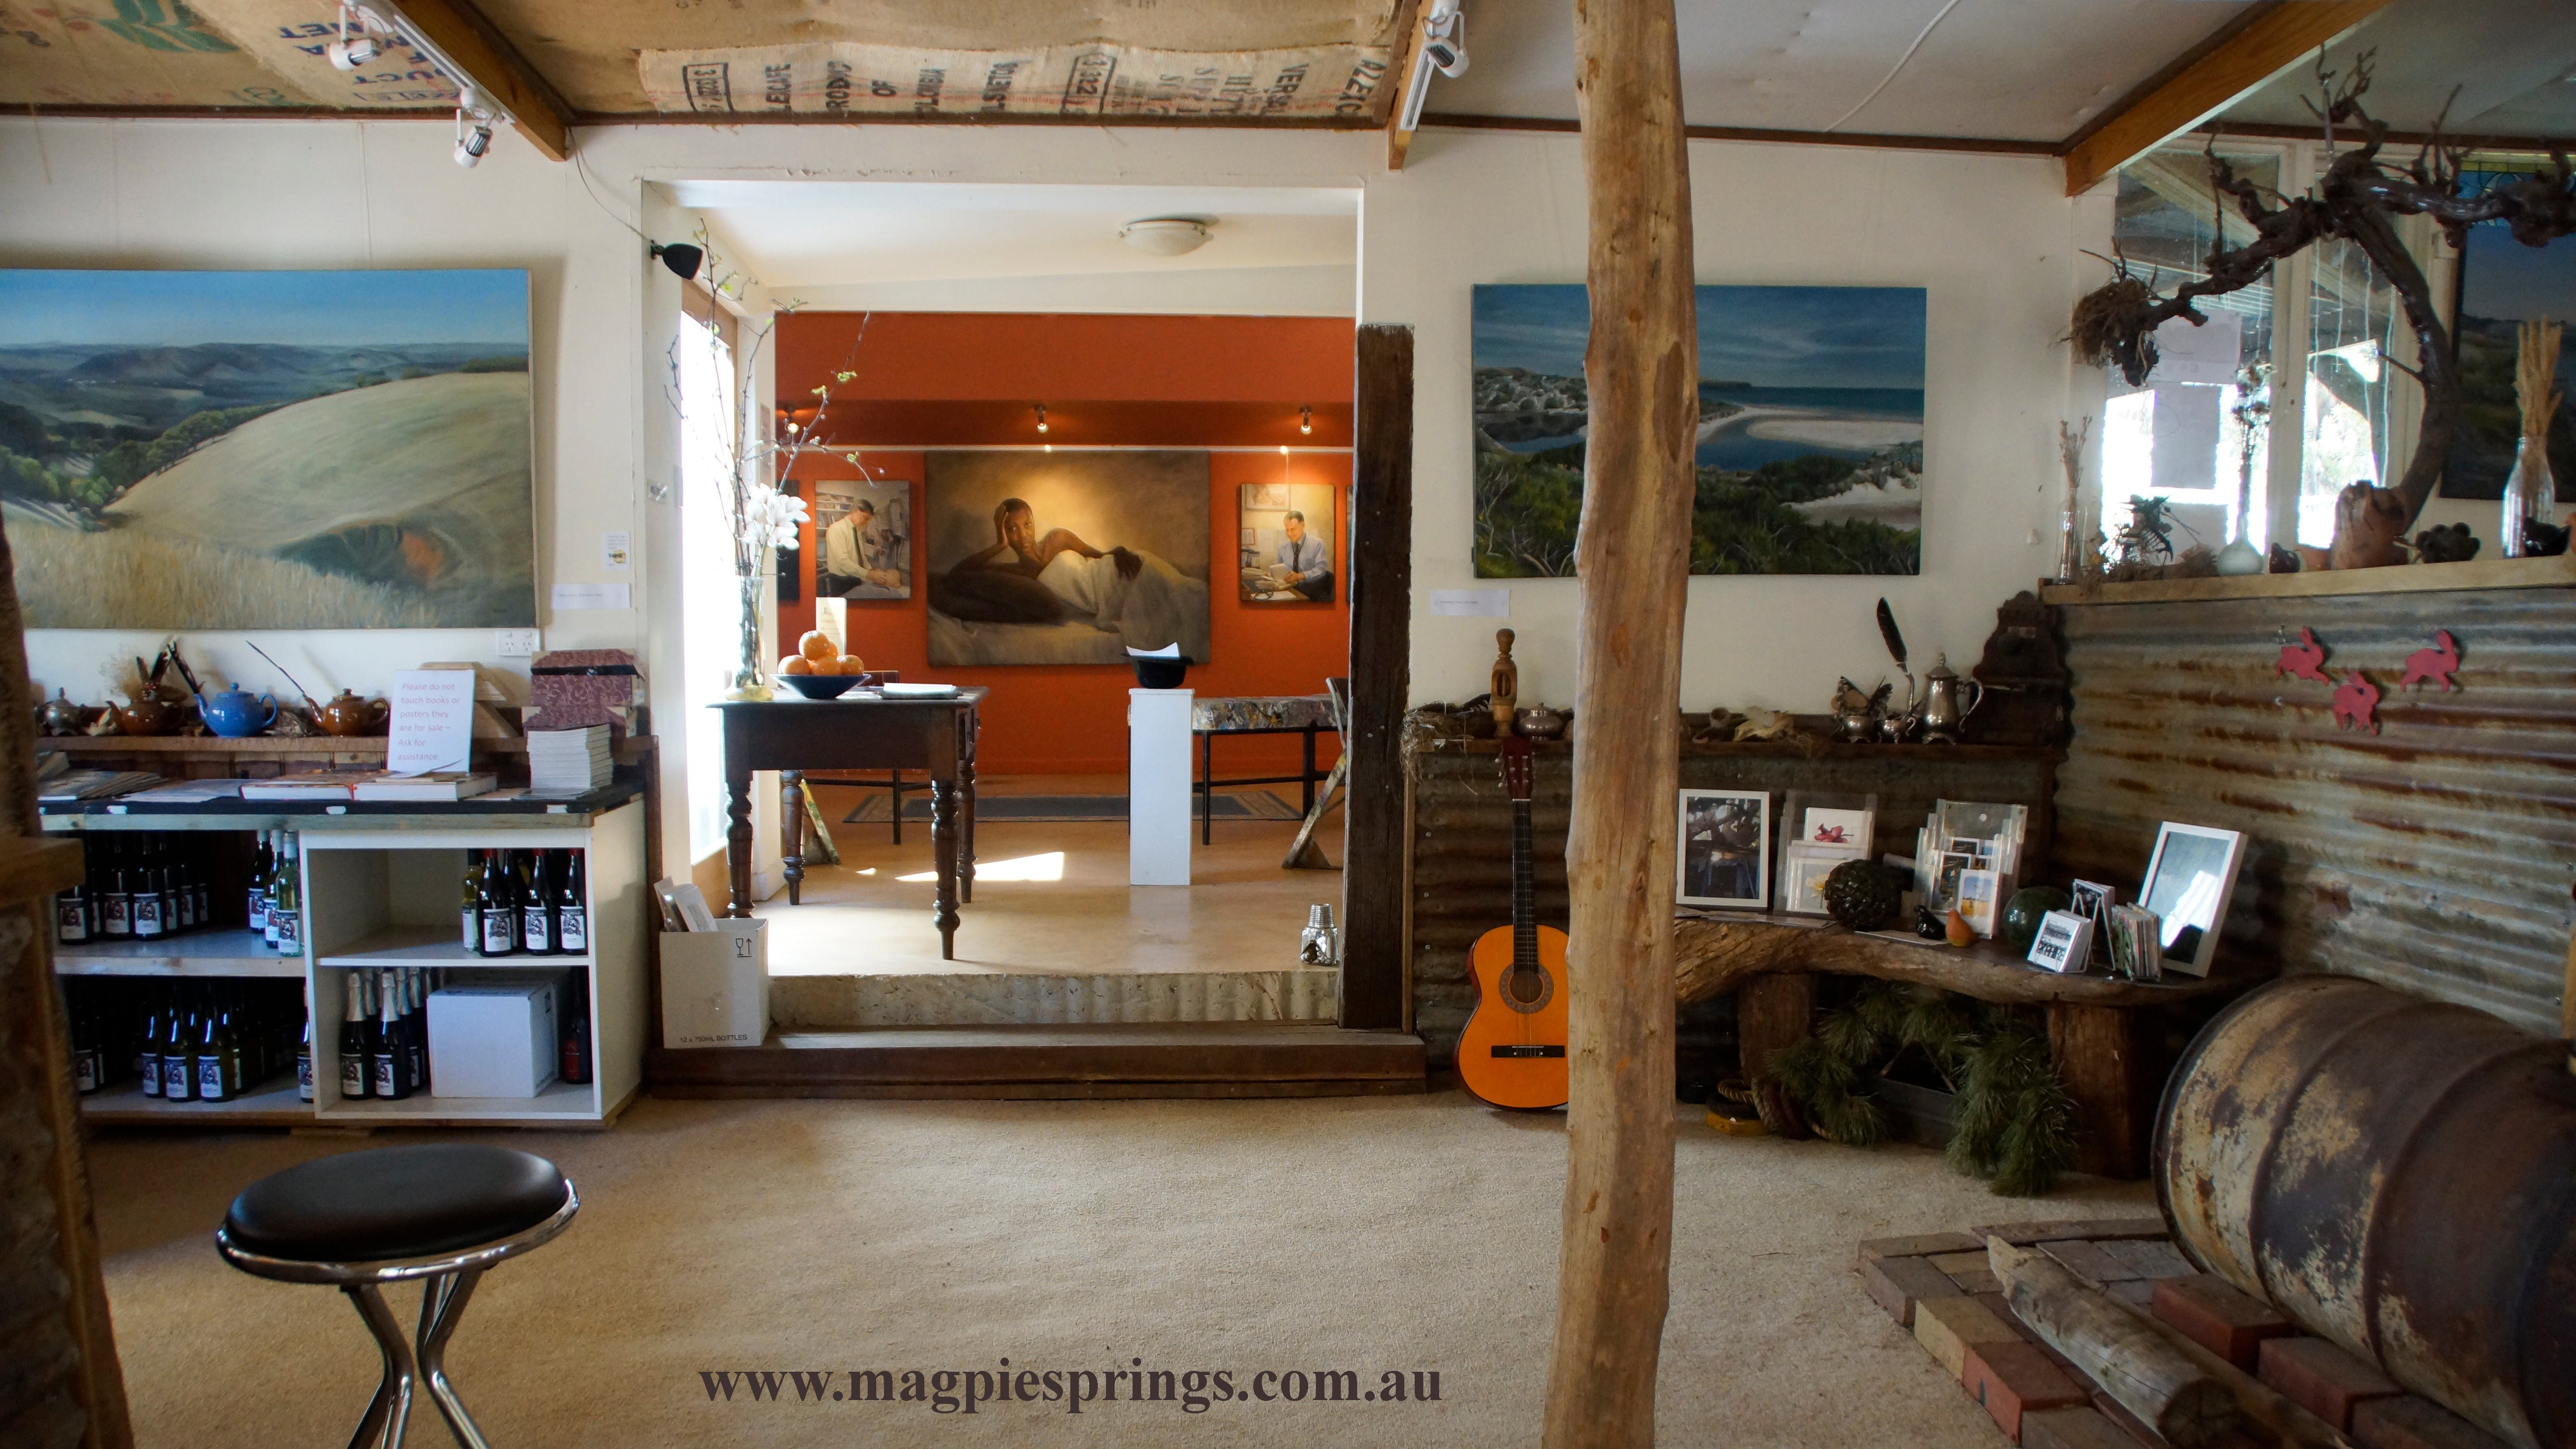 Magpie Springs gallery - WA Accommodation